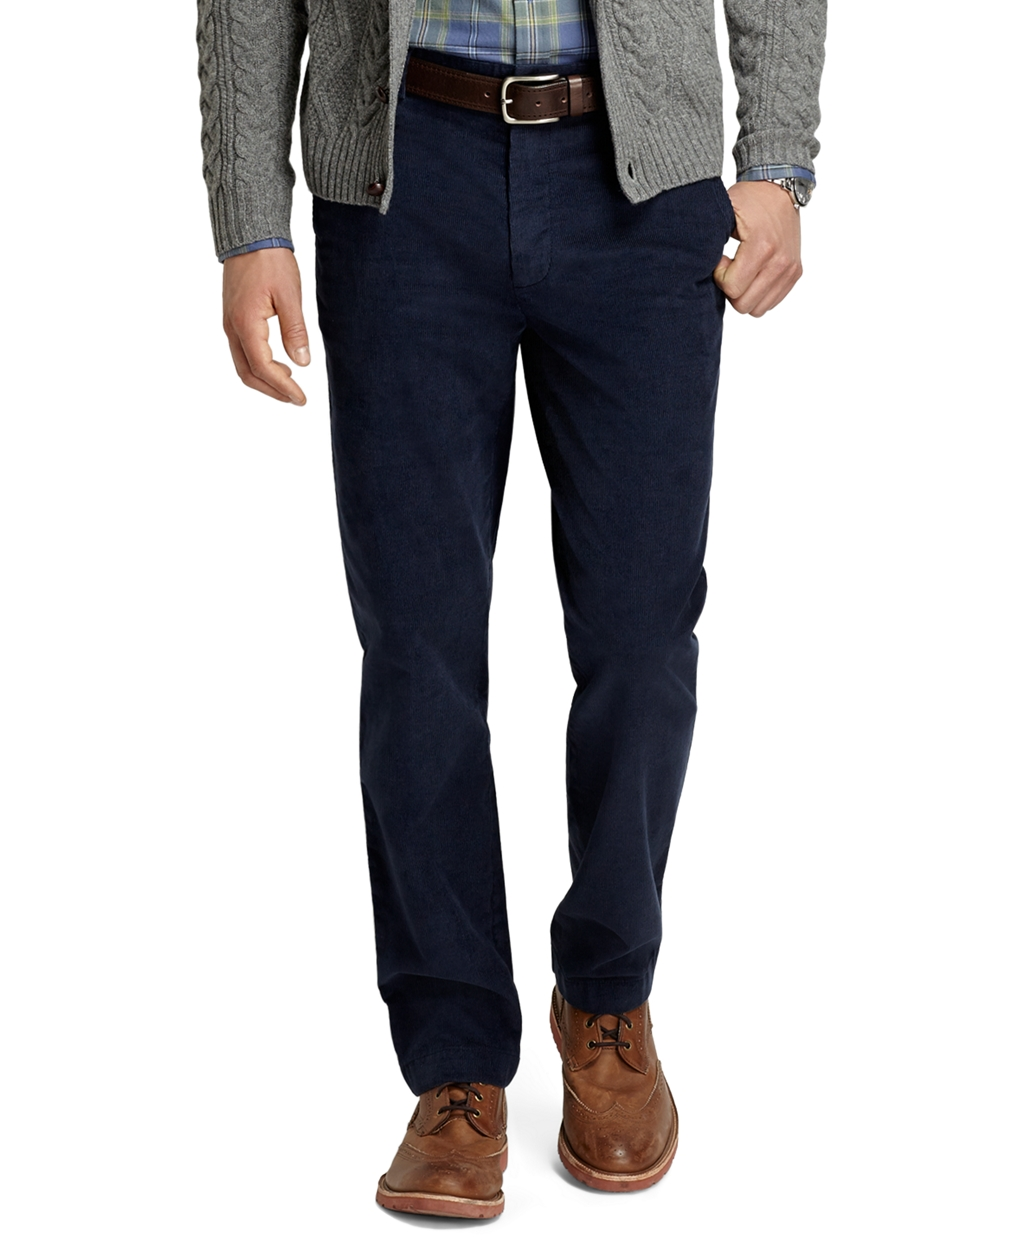 Blue Corduroy Pants Men